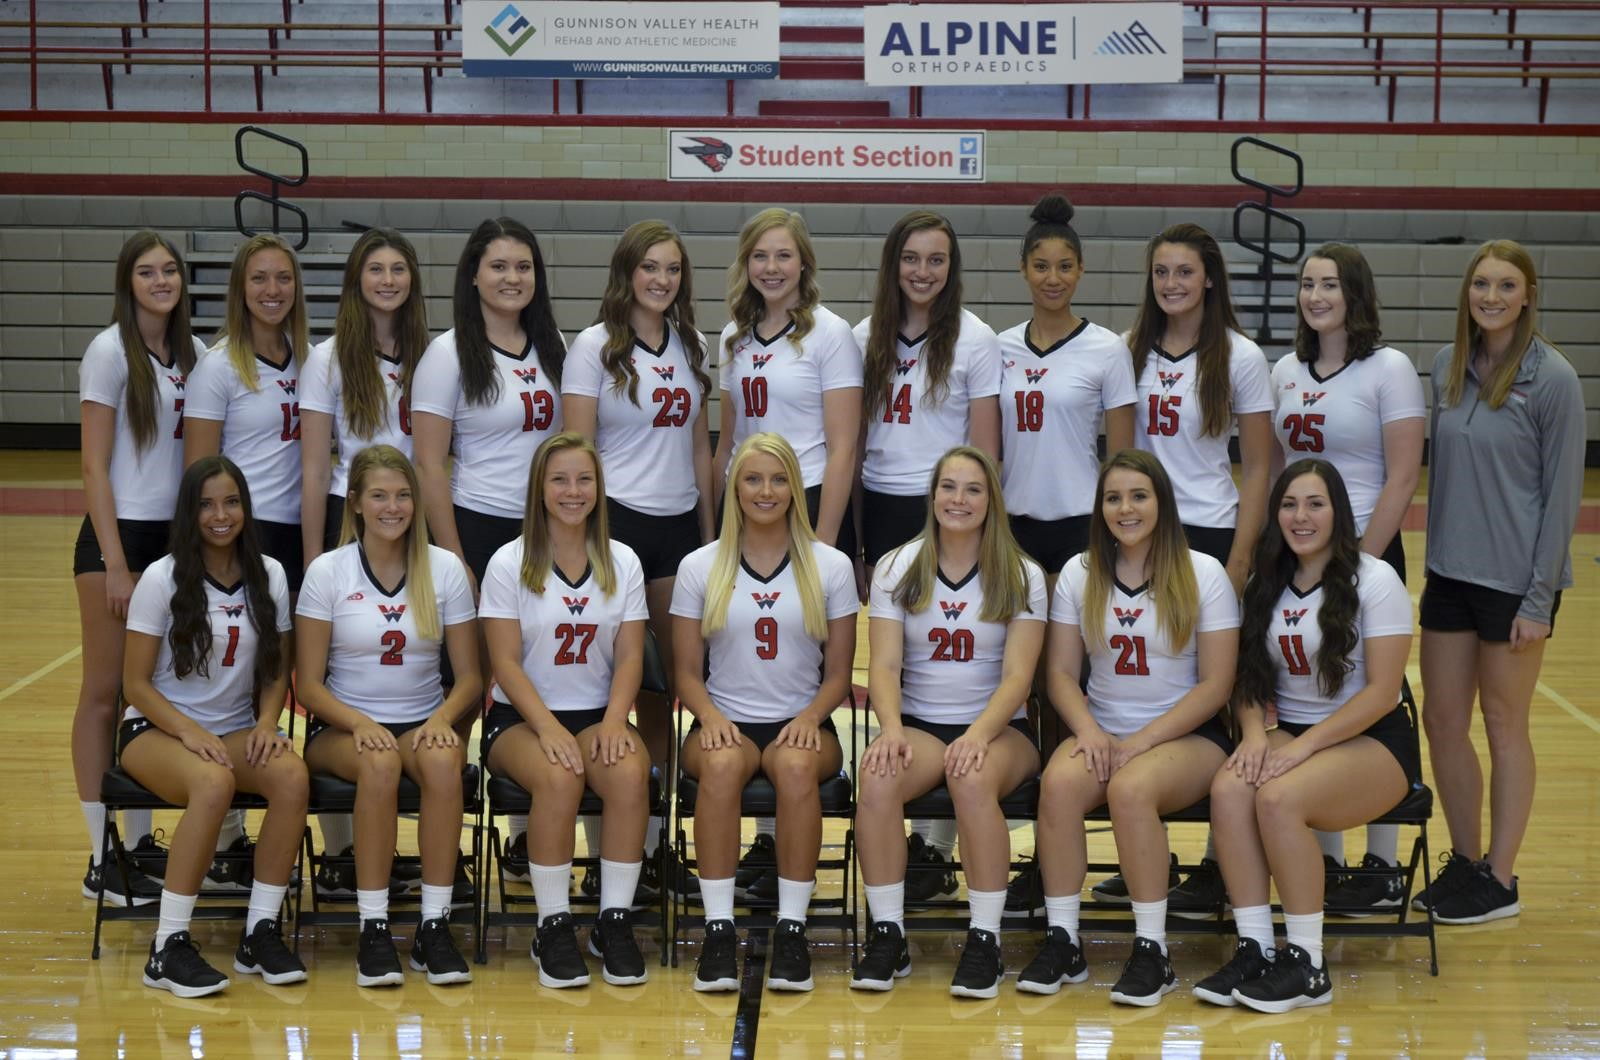 2018 Volleyball Roster Western Colorado University Athletics